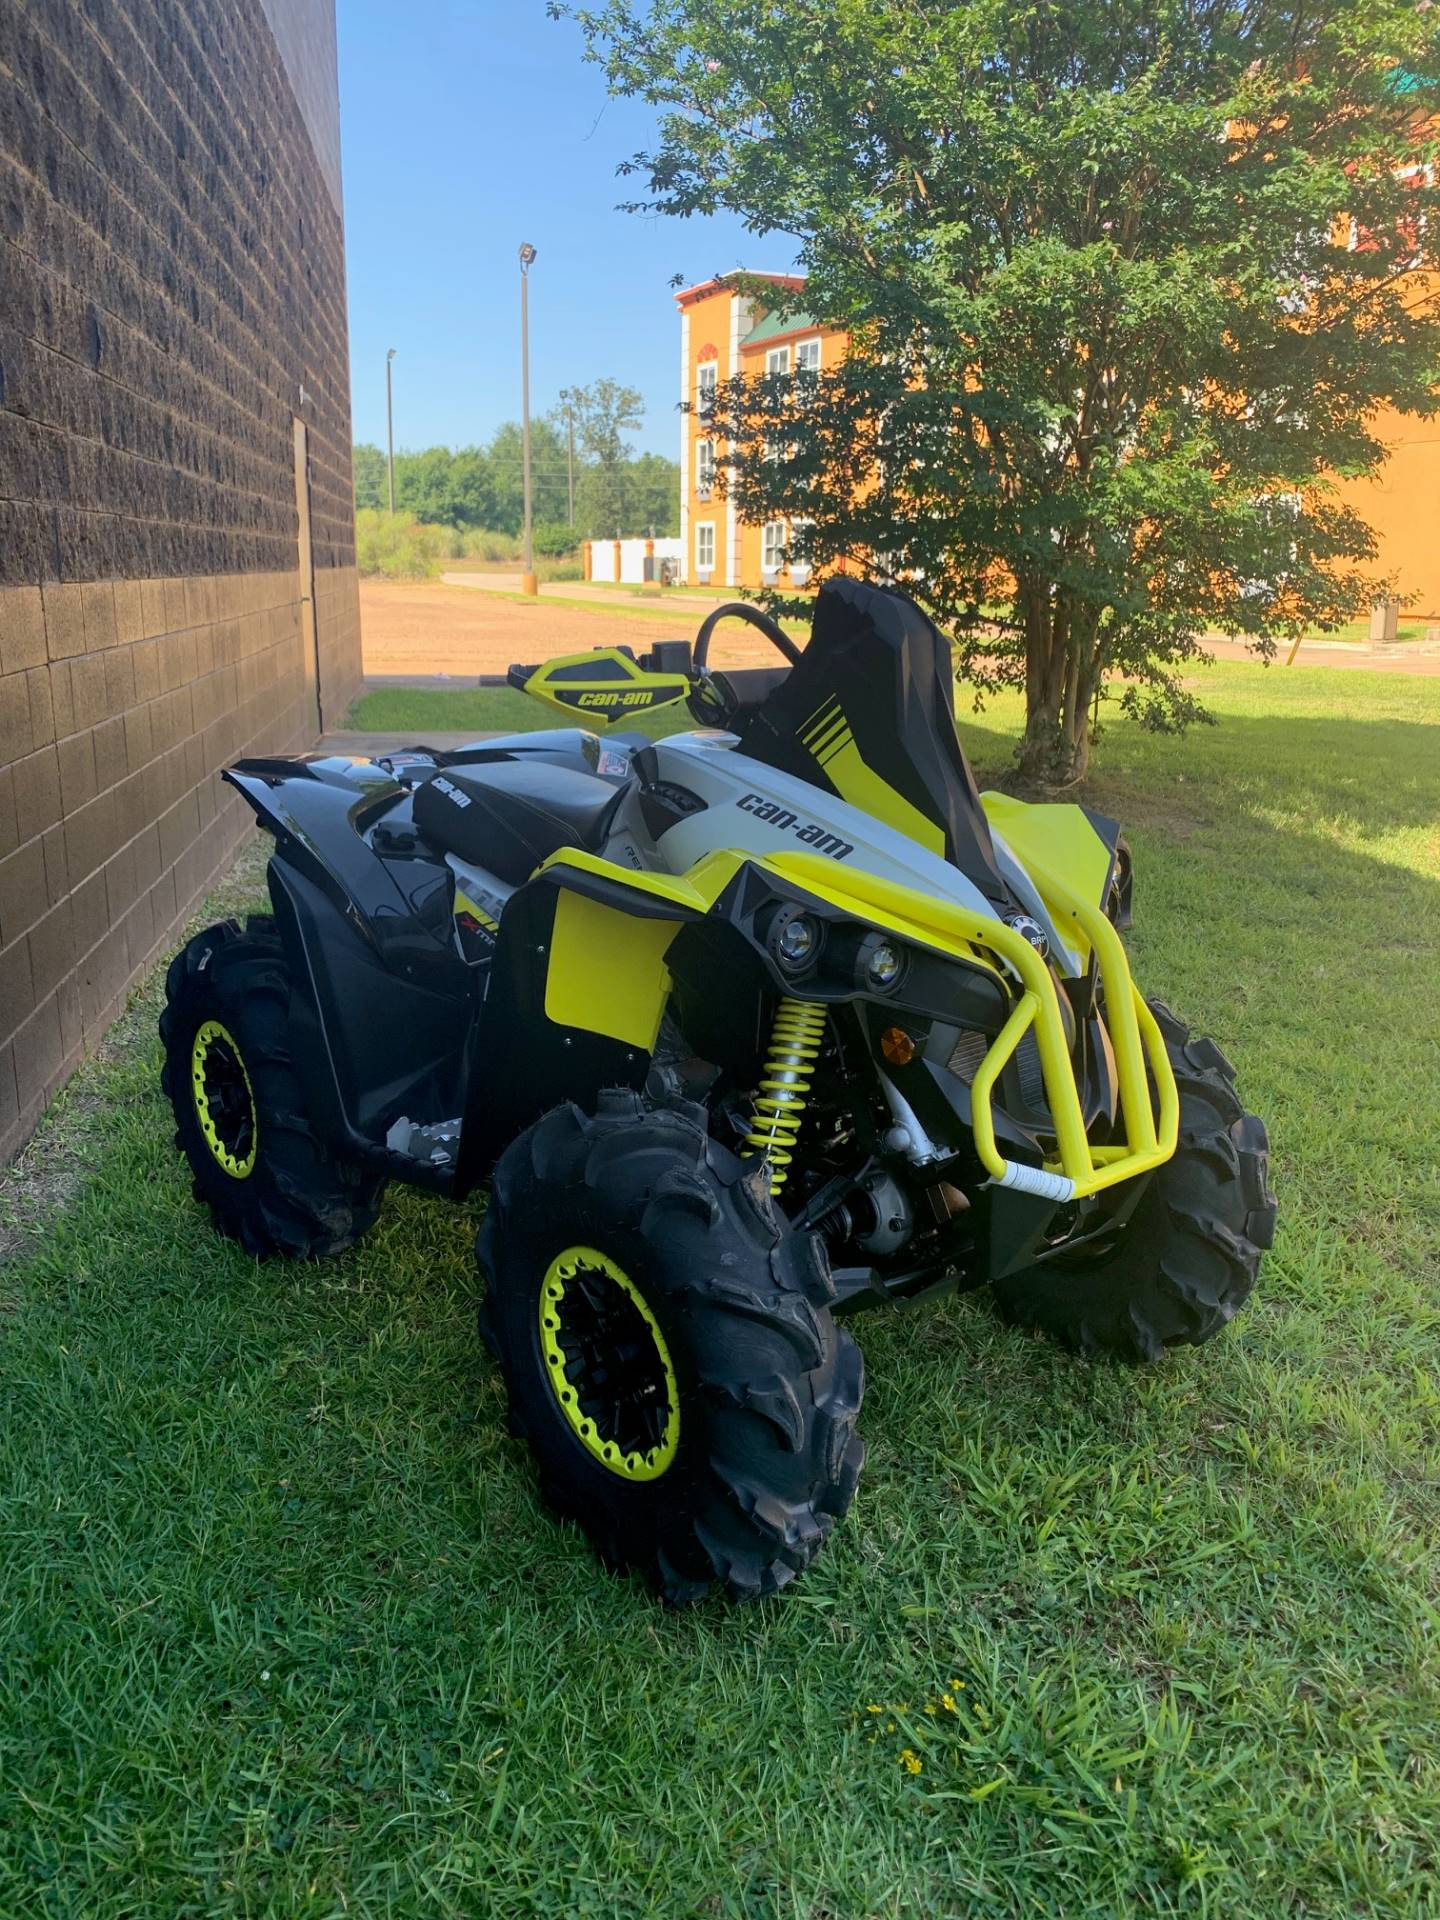 2019 Can-Am Renegade X MR 570 in West Monroe, Louisiana - Photo 3